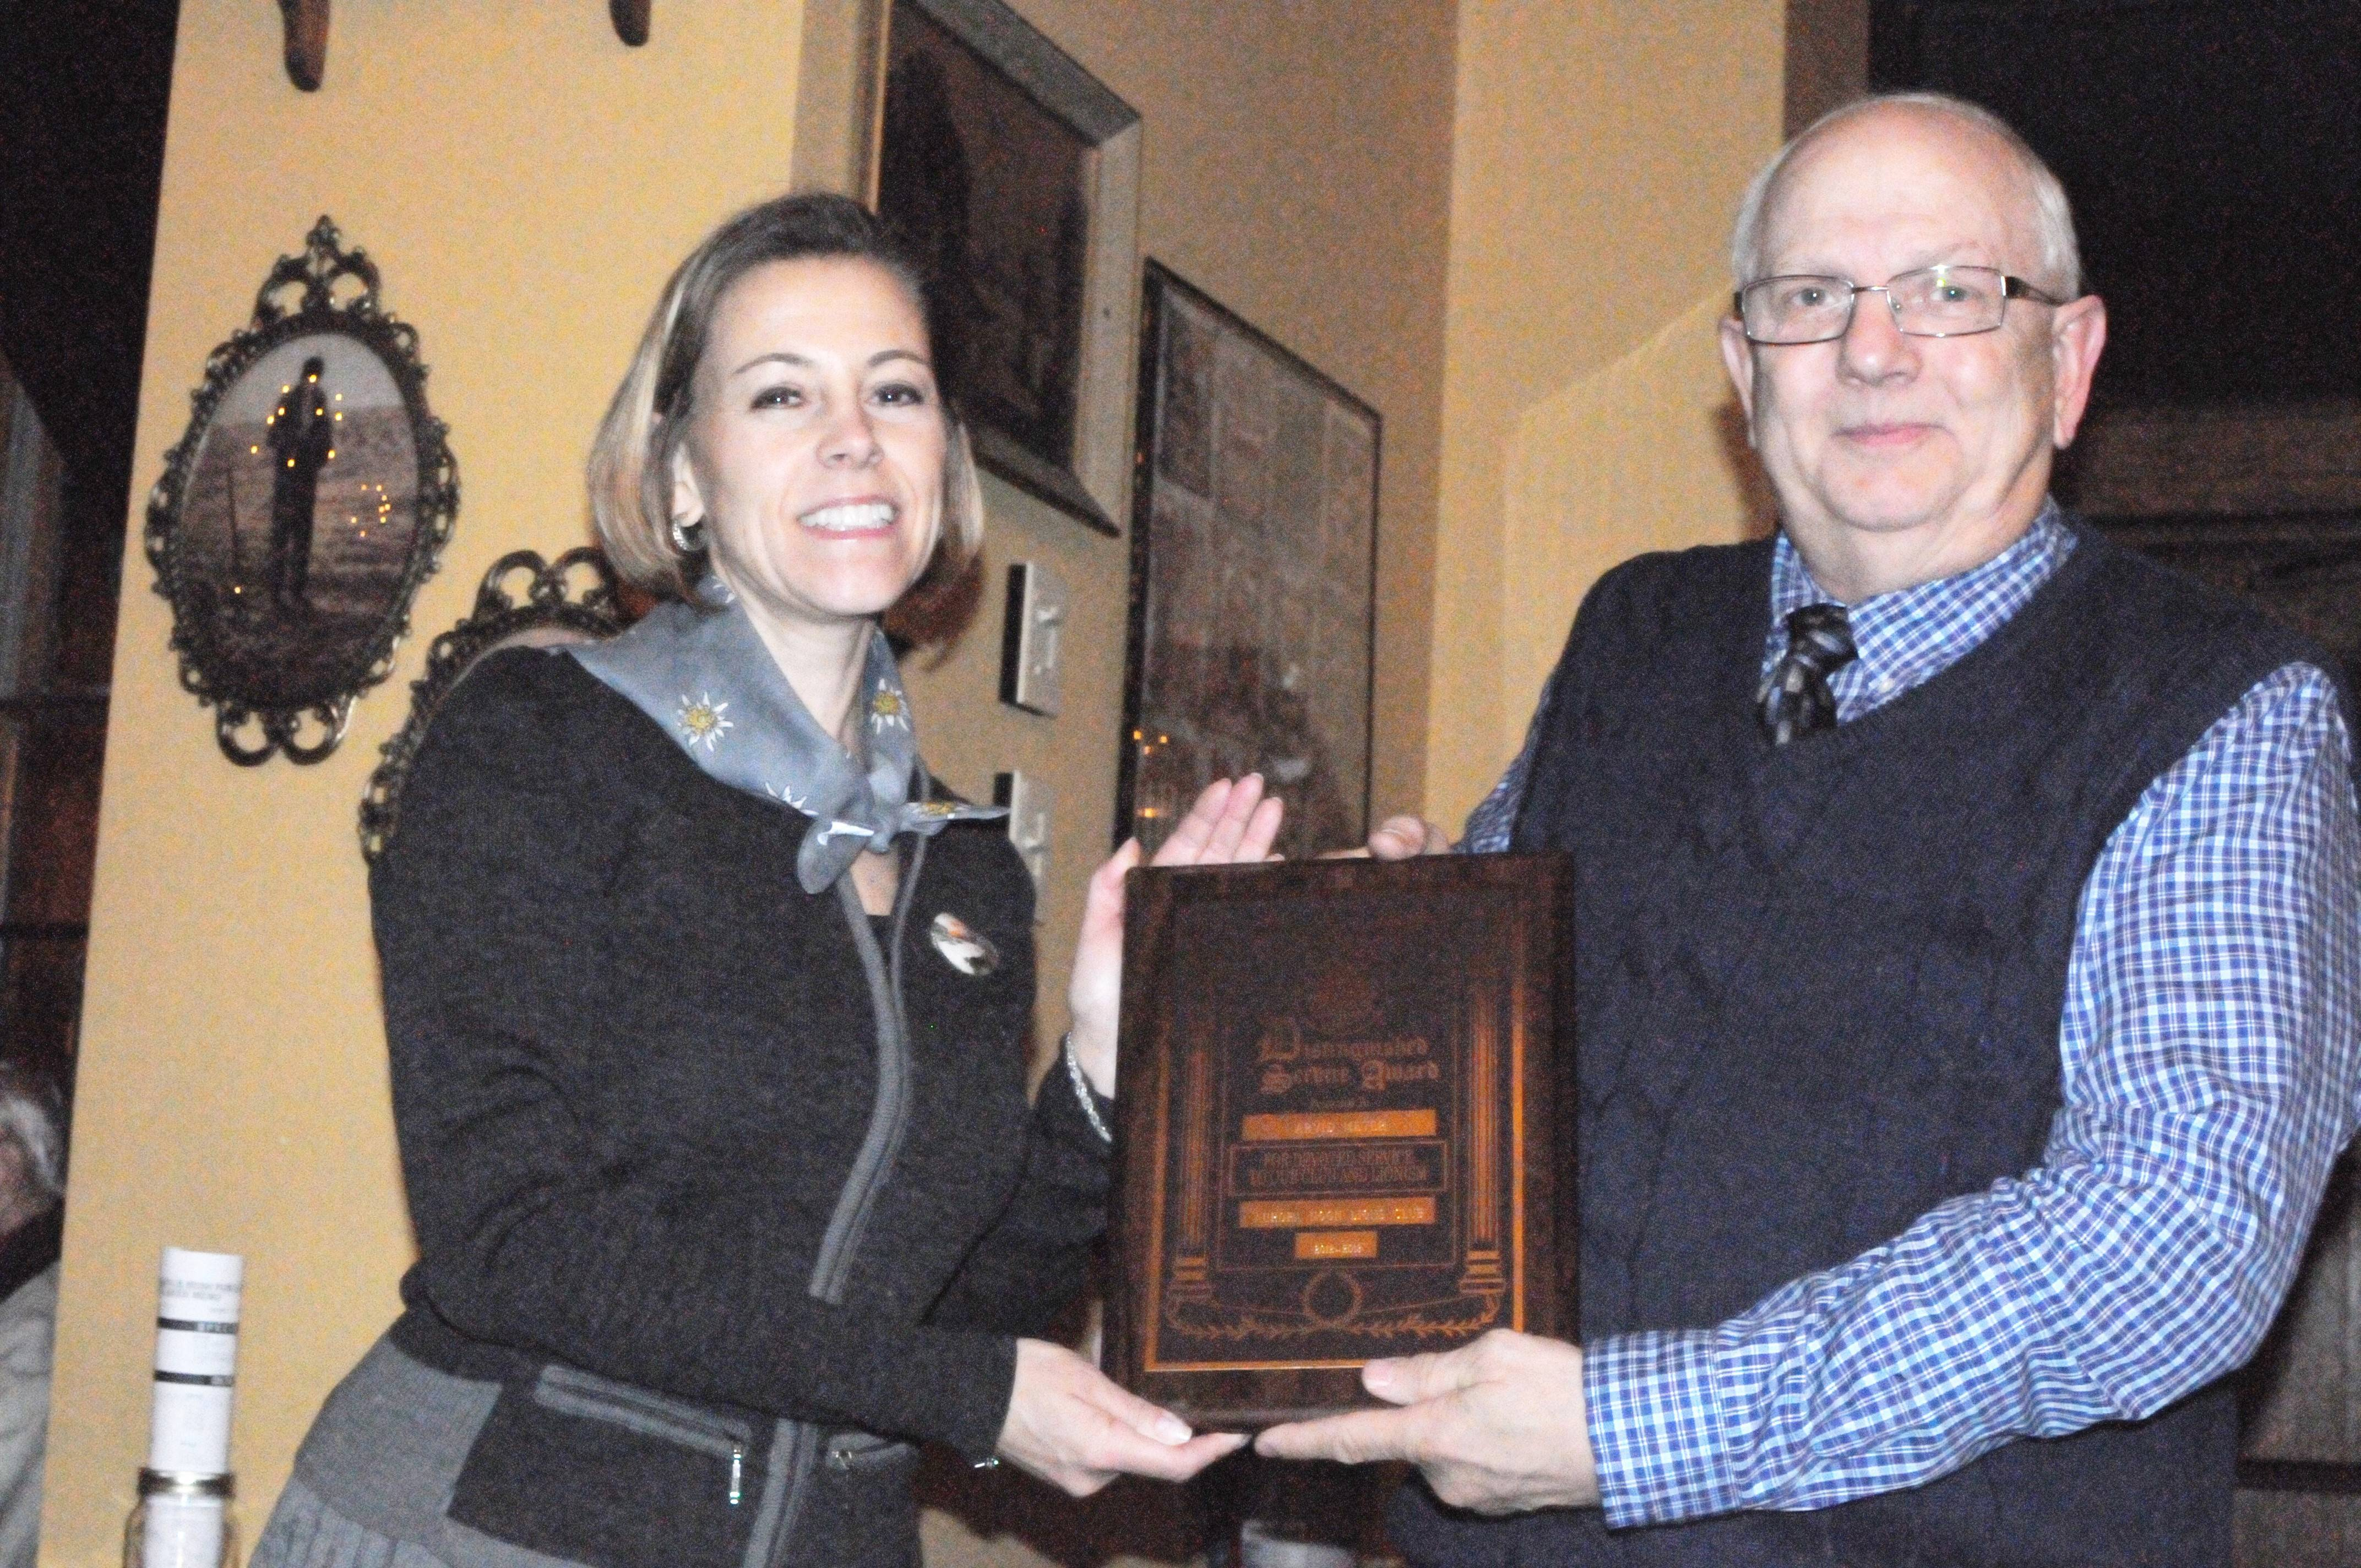 Arvid Meyer of Aurora, right, receives the Aurora Noon Lions Club's distinguished service award for 2012-2013 March 27 at Bally Doyle restaurant in Aurora. At left, Michele Needham of Plainfield, Noon Lions scholarship and service awards chairman, presents Meyer's award.